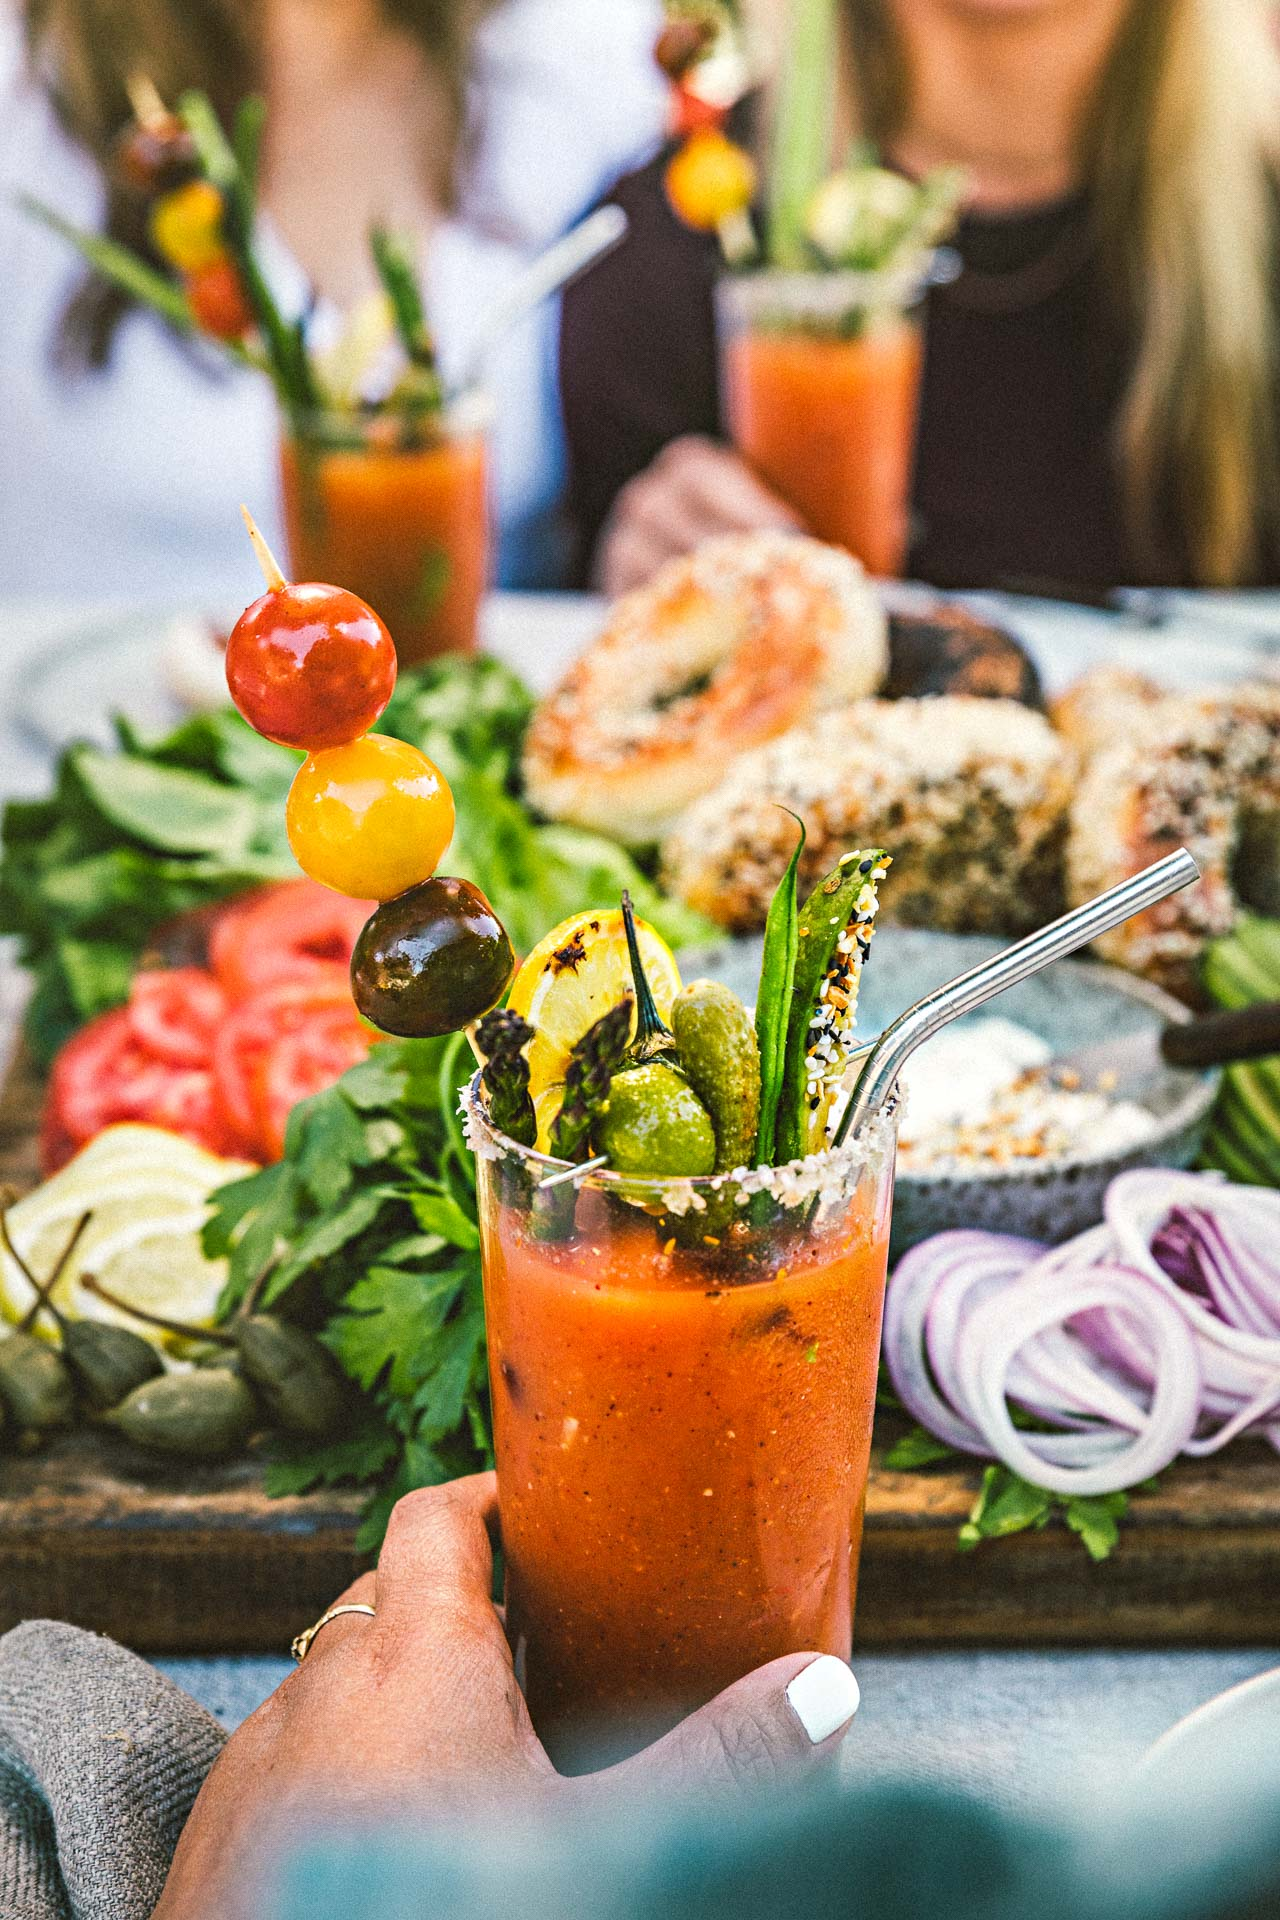 Grilled Bloody Mary | HonestlyYUM (honestlyyum.com) #cocktails #grilling #recipes #bloodymary #vodka